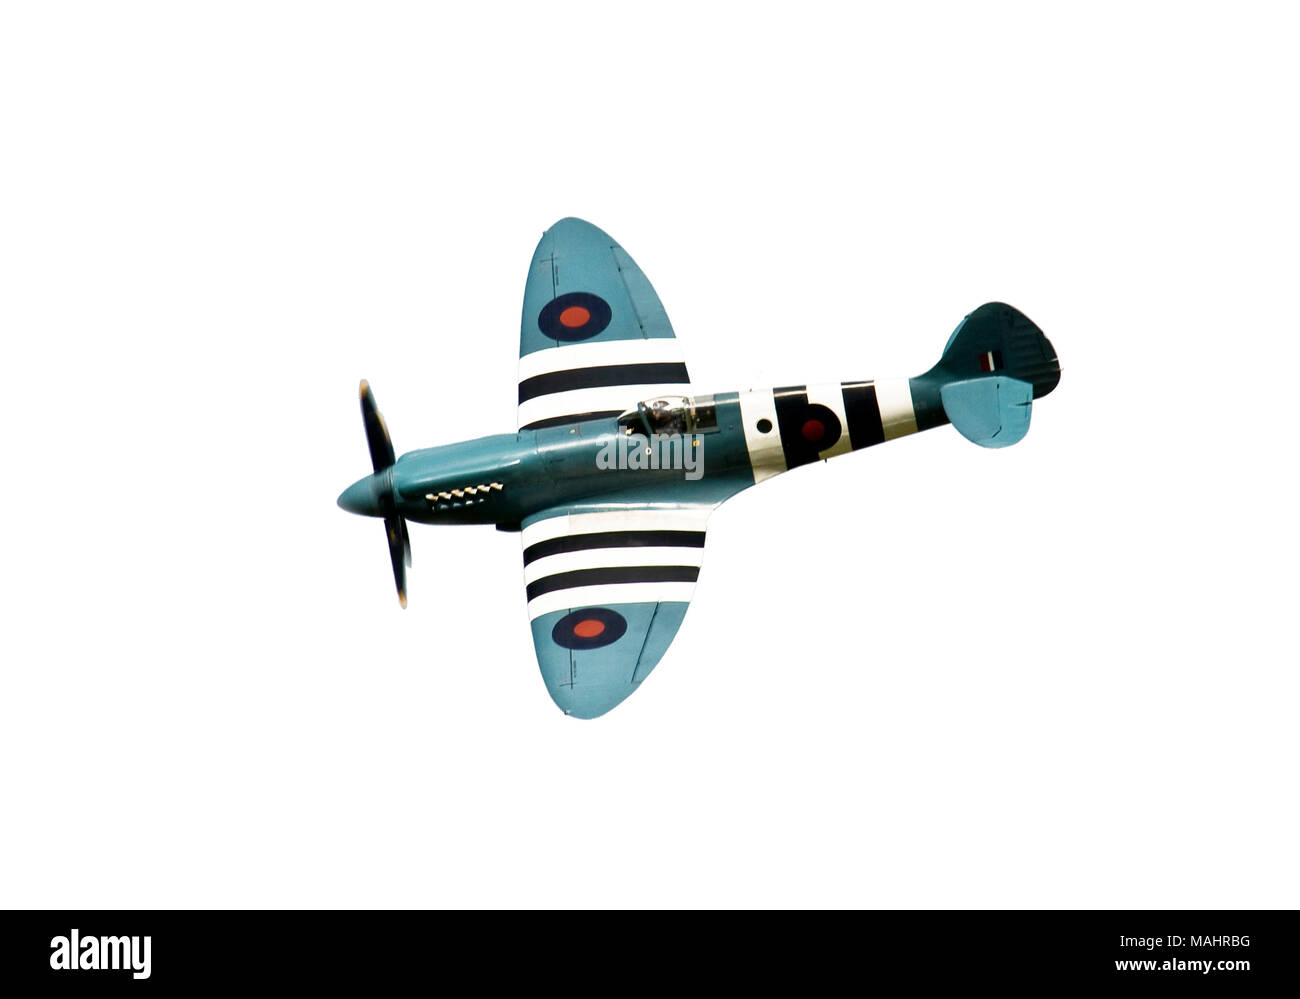 WW' spitfire on a white background - Stock Image